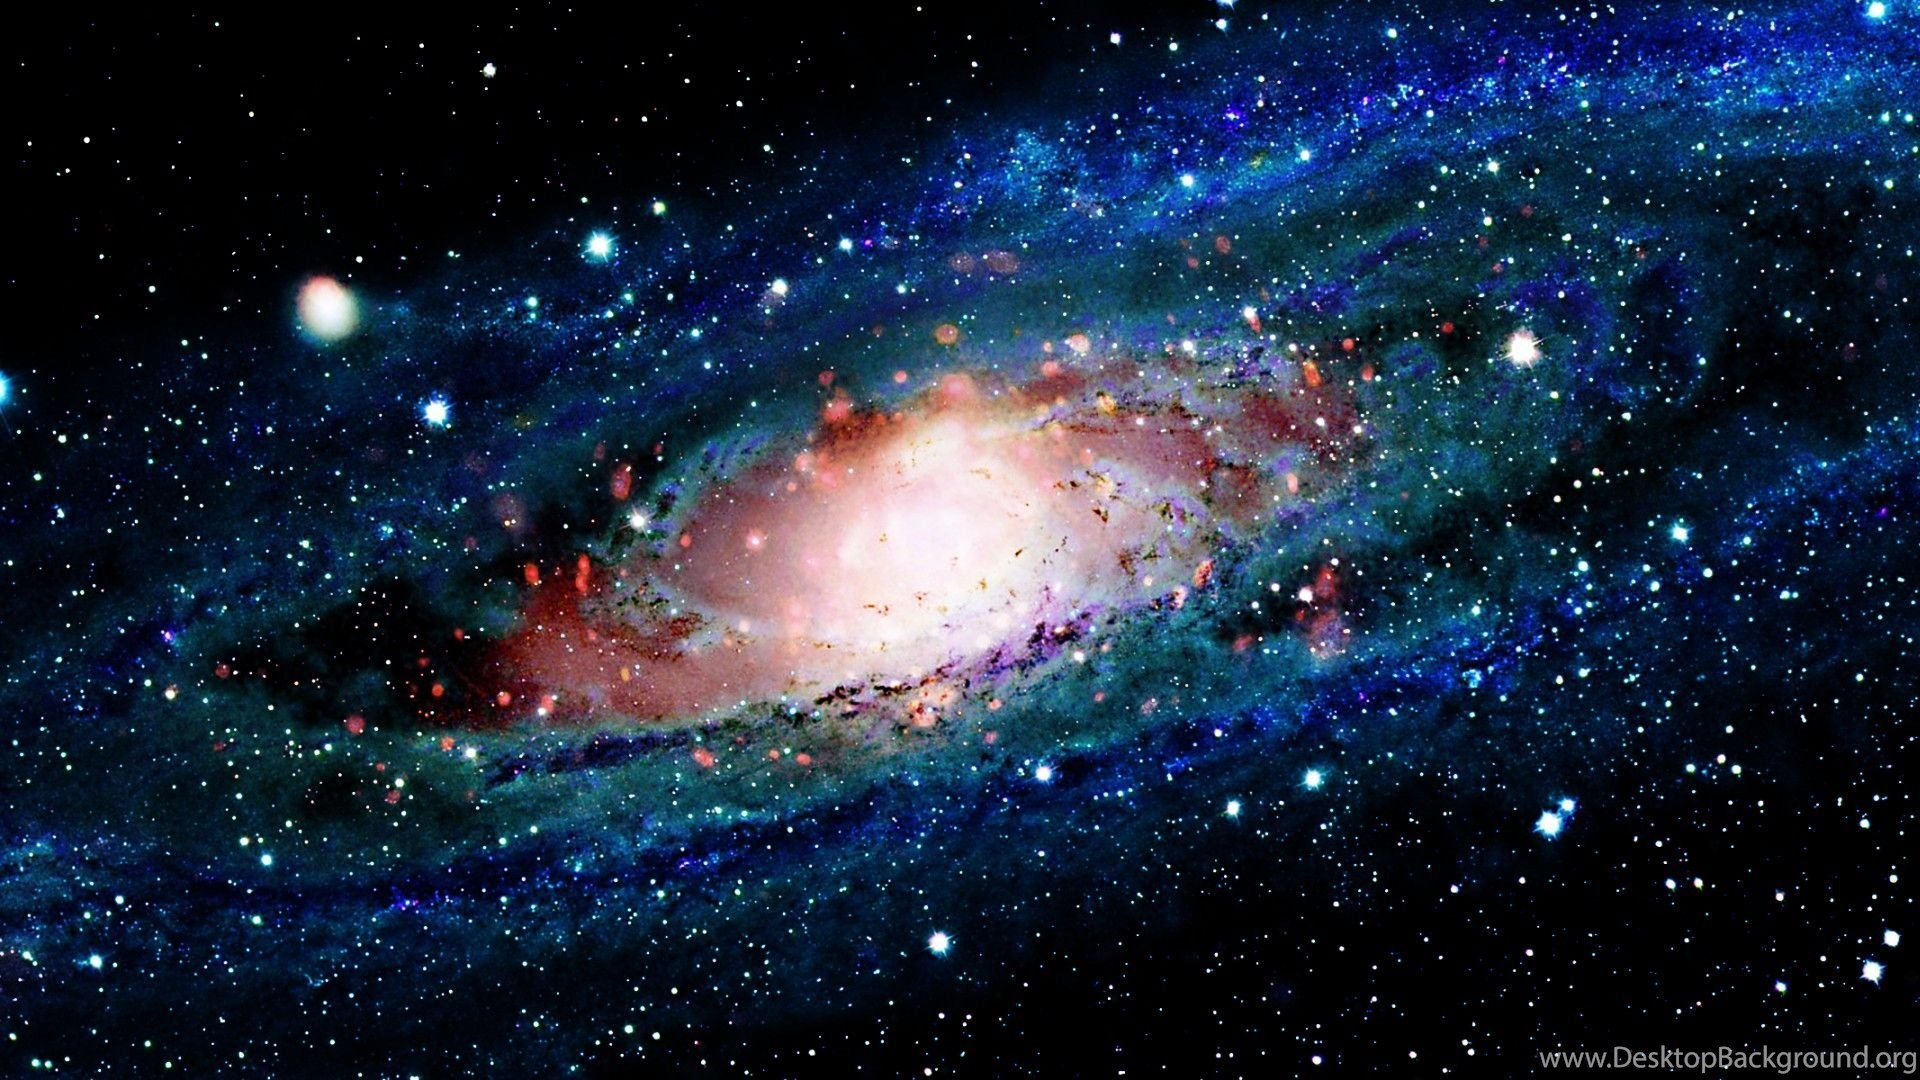 Cool Background Pictures Of Space